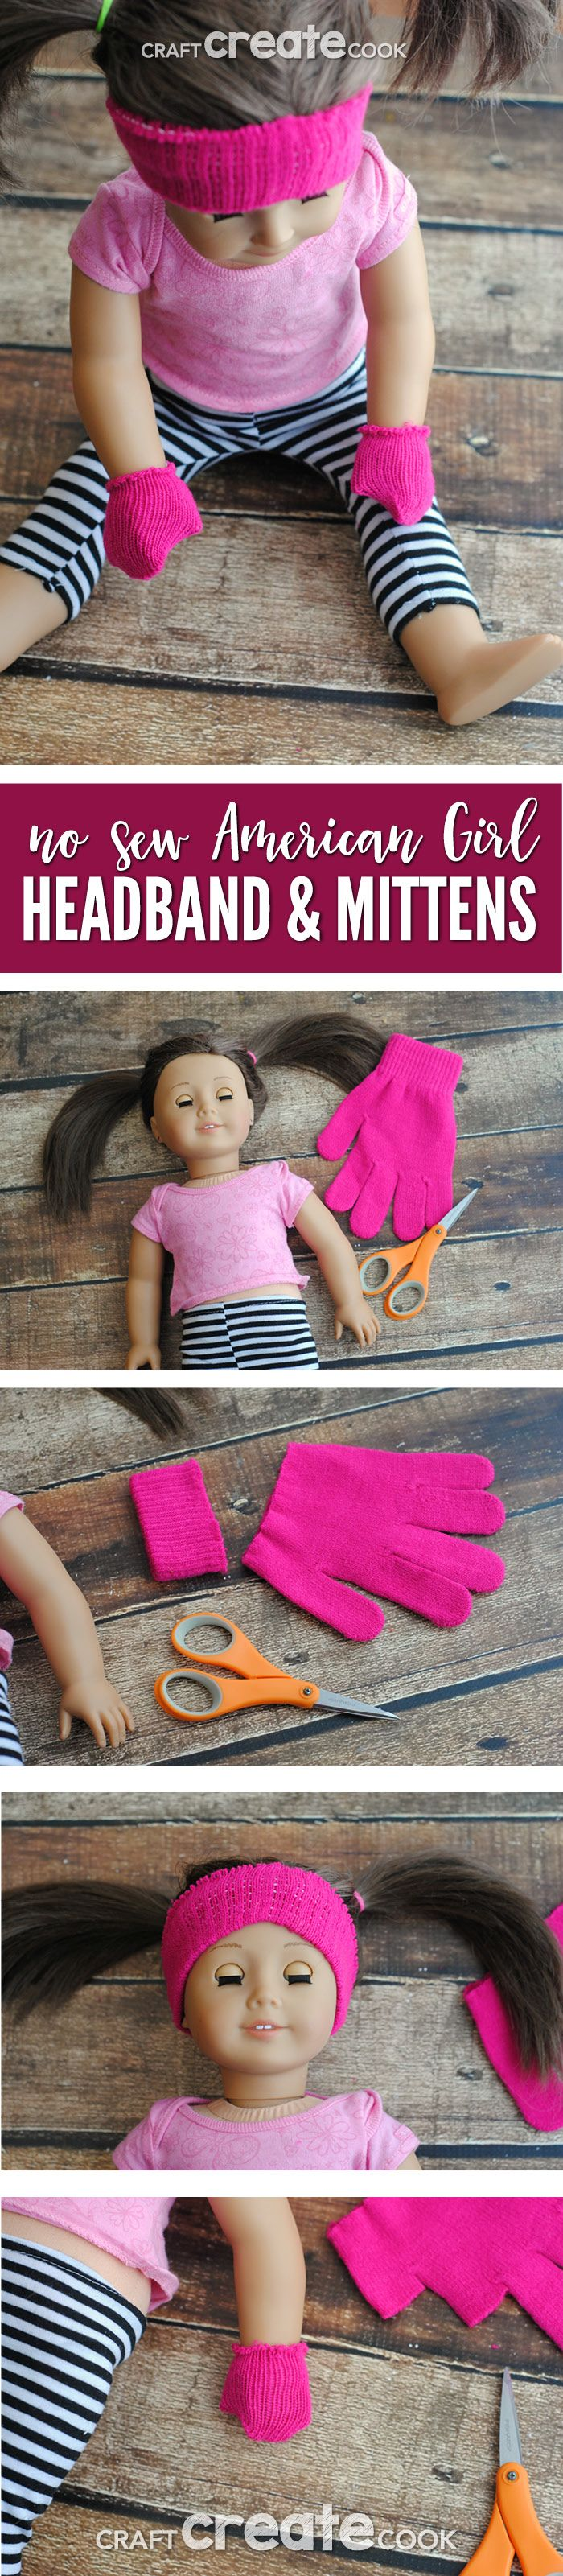 Plastic headbands for crafts - Keep Your American Girl Doll Warm And Toasty With Our No Sew Headband